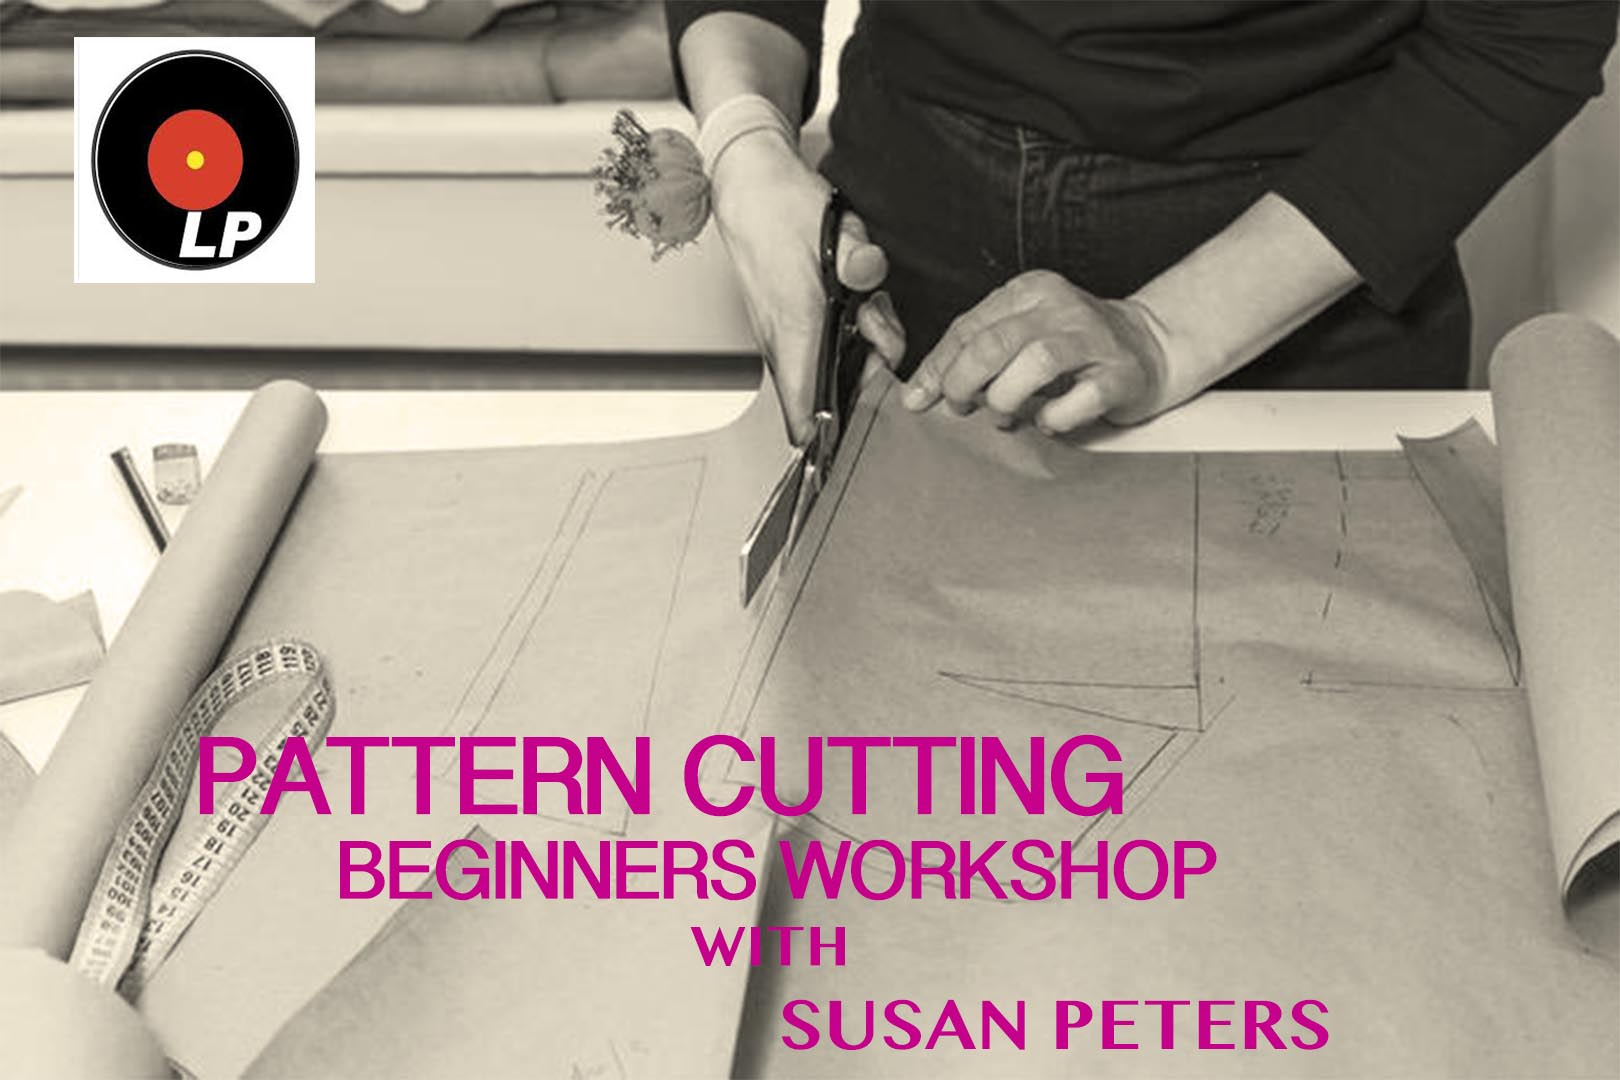 91739206 - seamstress is cutting drawing for a dress with scissors. style and design development and creating garment, clothes sew and repair service, seamstress at work concept